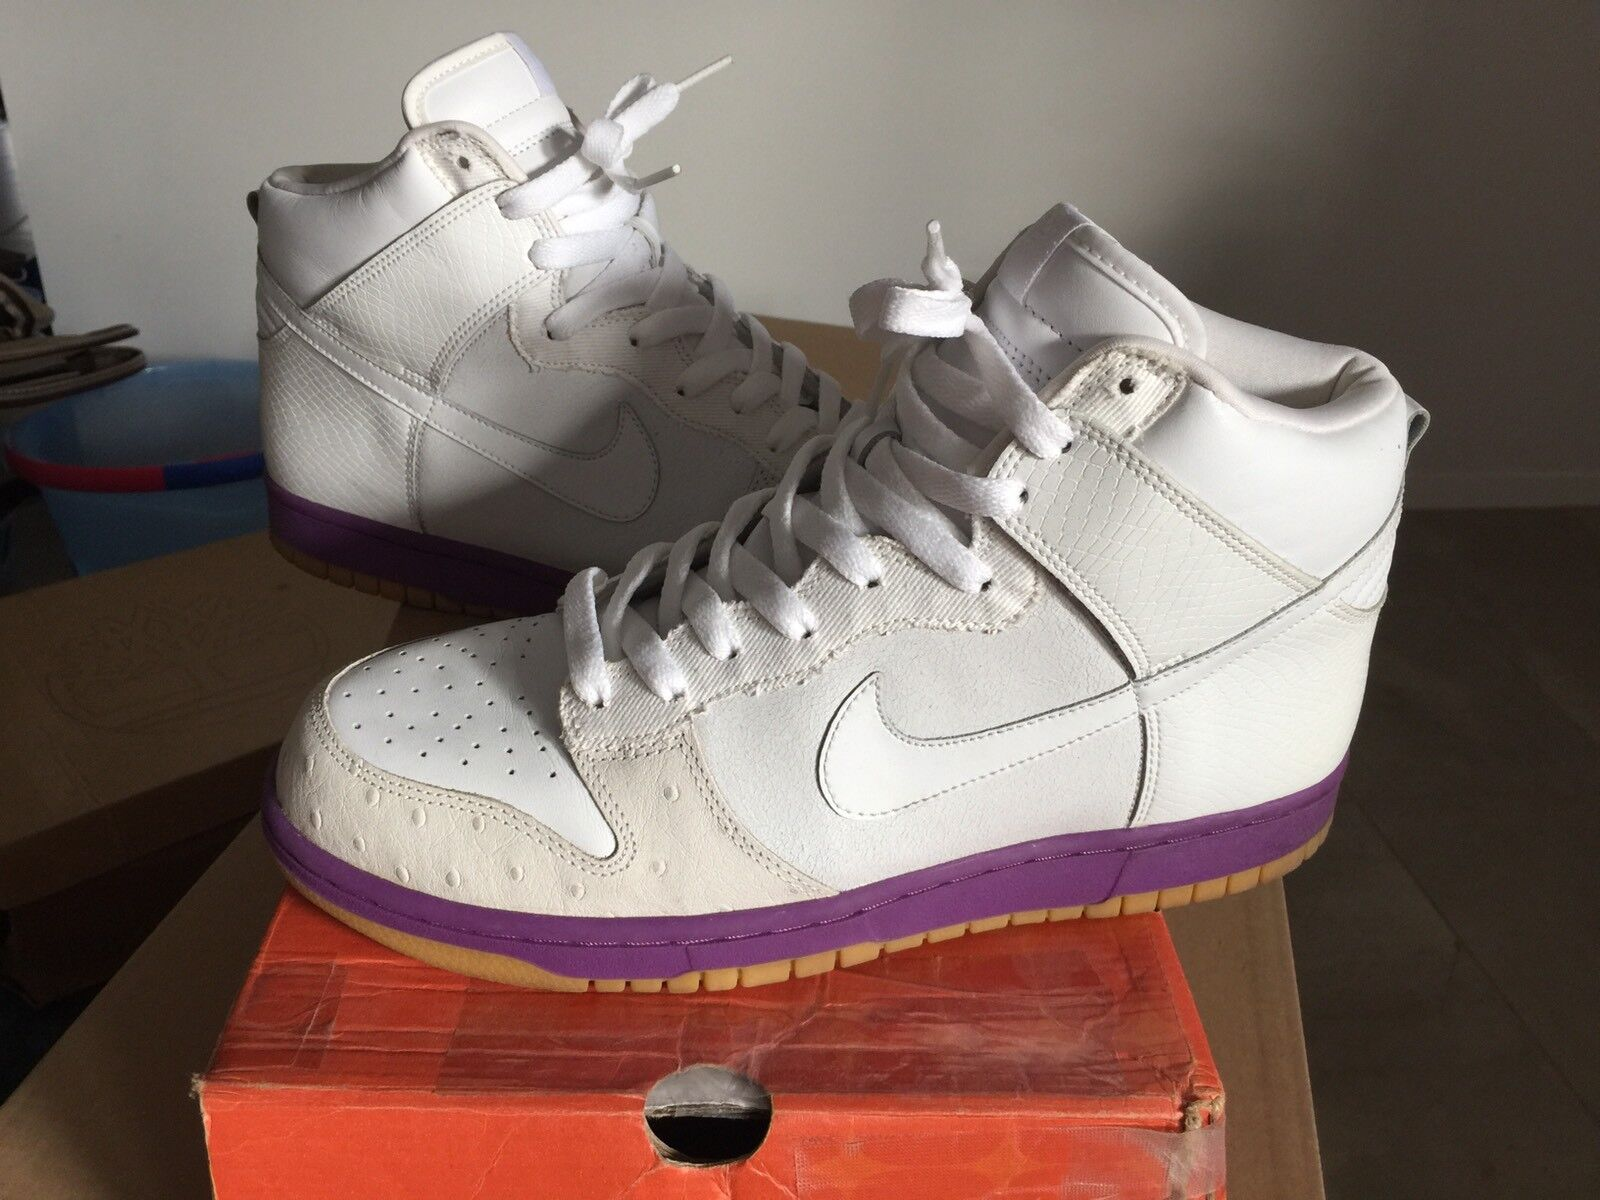 Nike Dunk High MITA Japan Purple White Gum 10 Black Ostrich Denim Snake